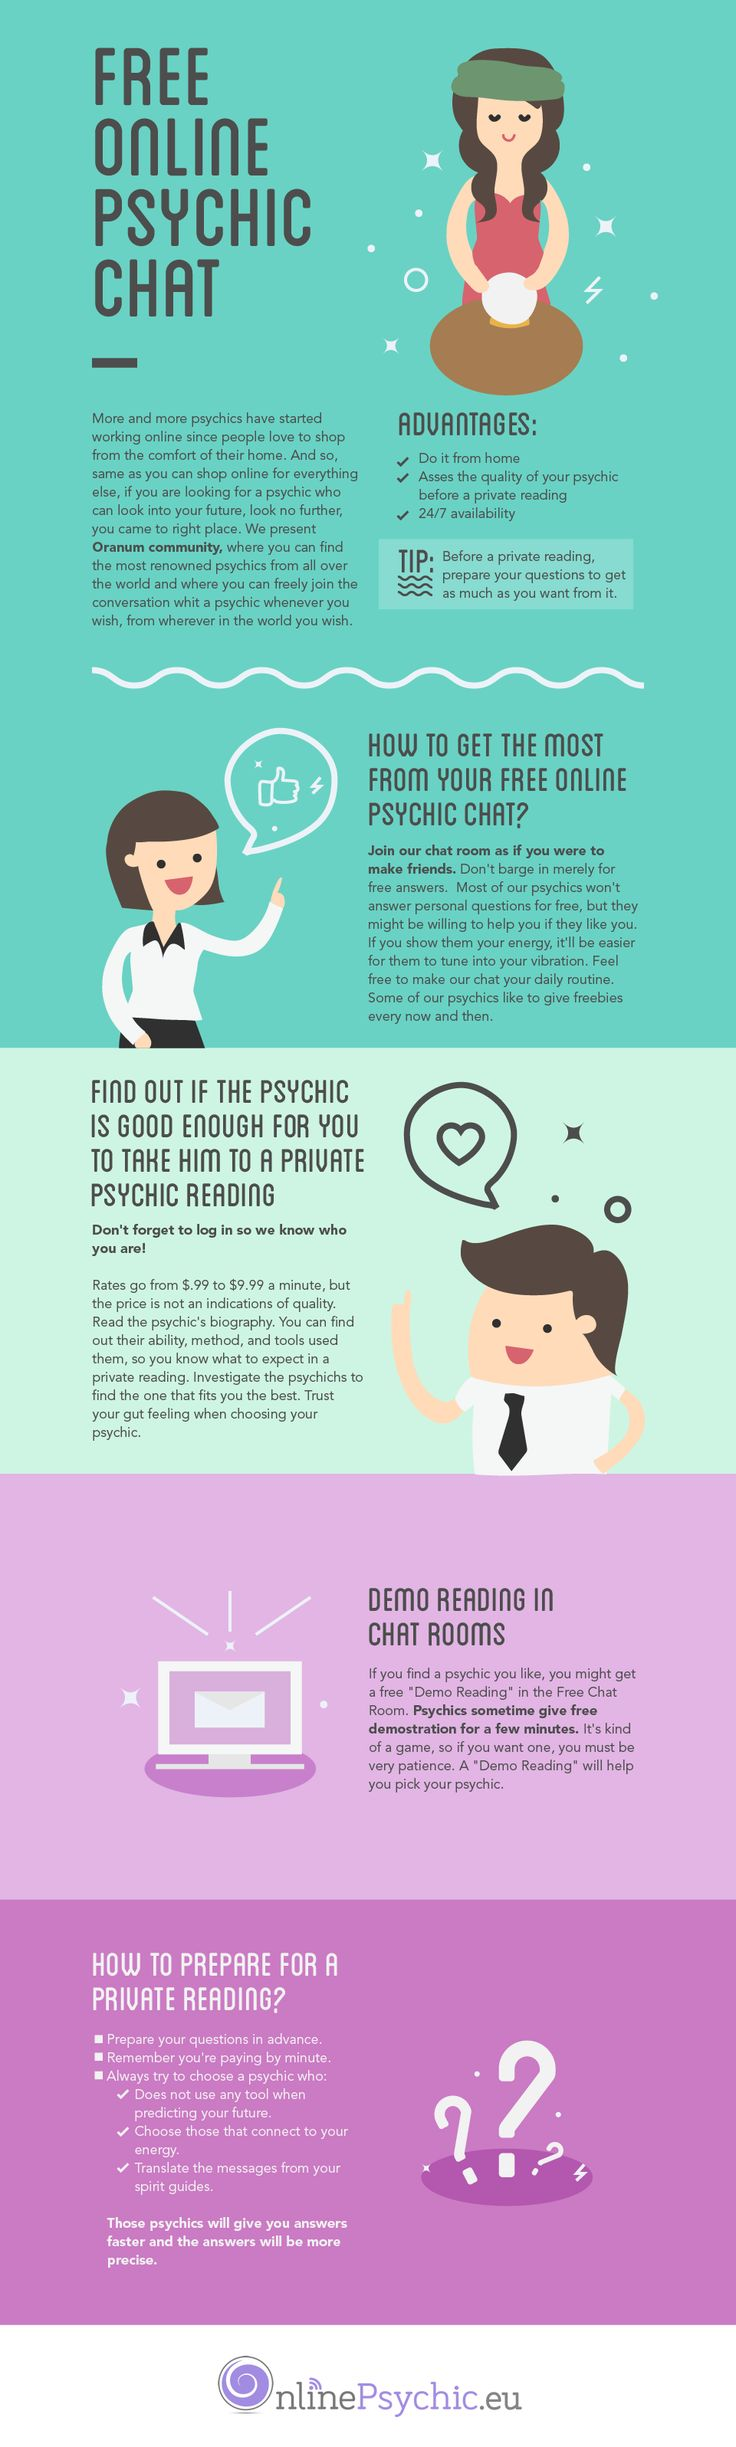 [infographic] How To Get Free Psychic Reading